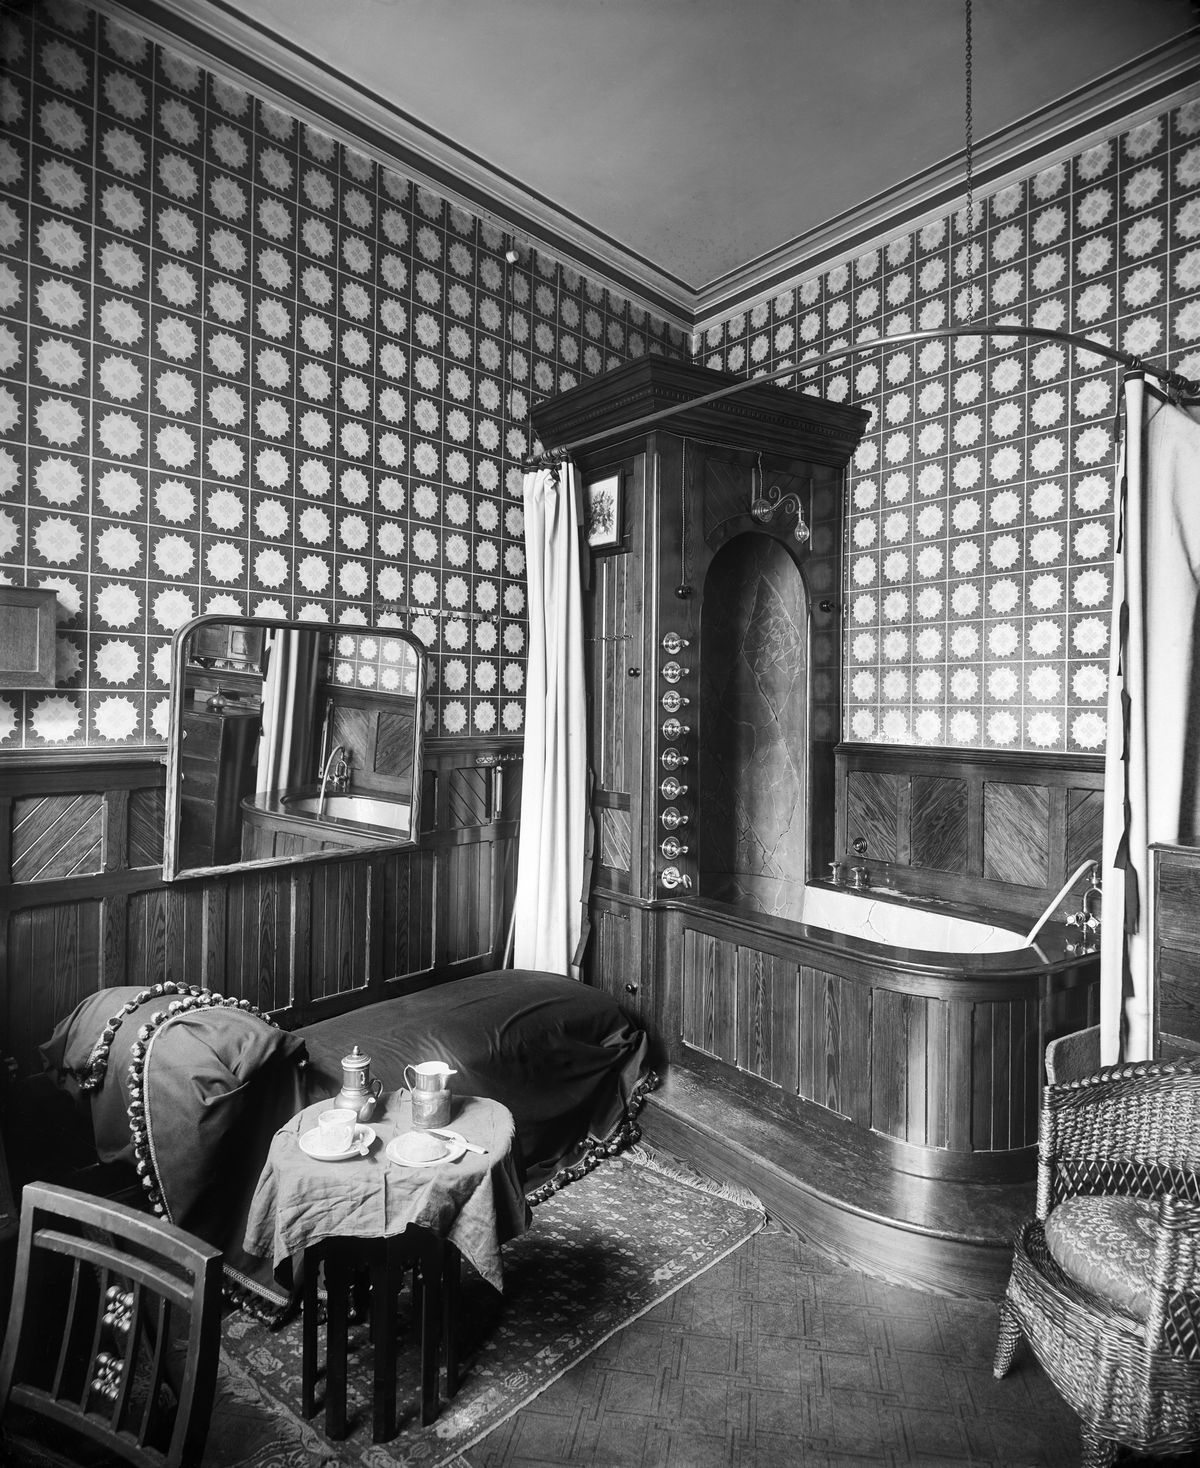 An archival photo of a Victorian bathroom featuring a wicker chair, rug, wood cabinetry around the bathtub, and wainscoting.